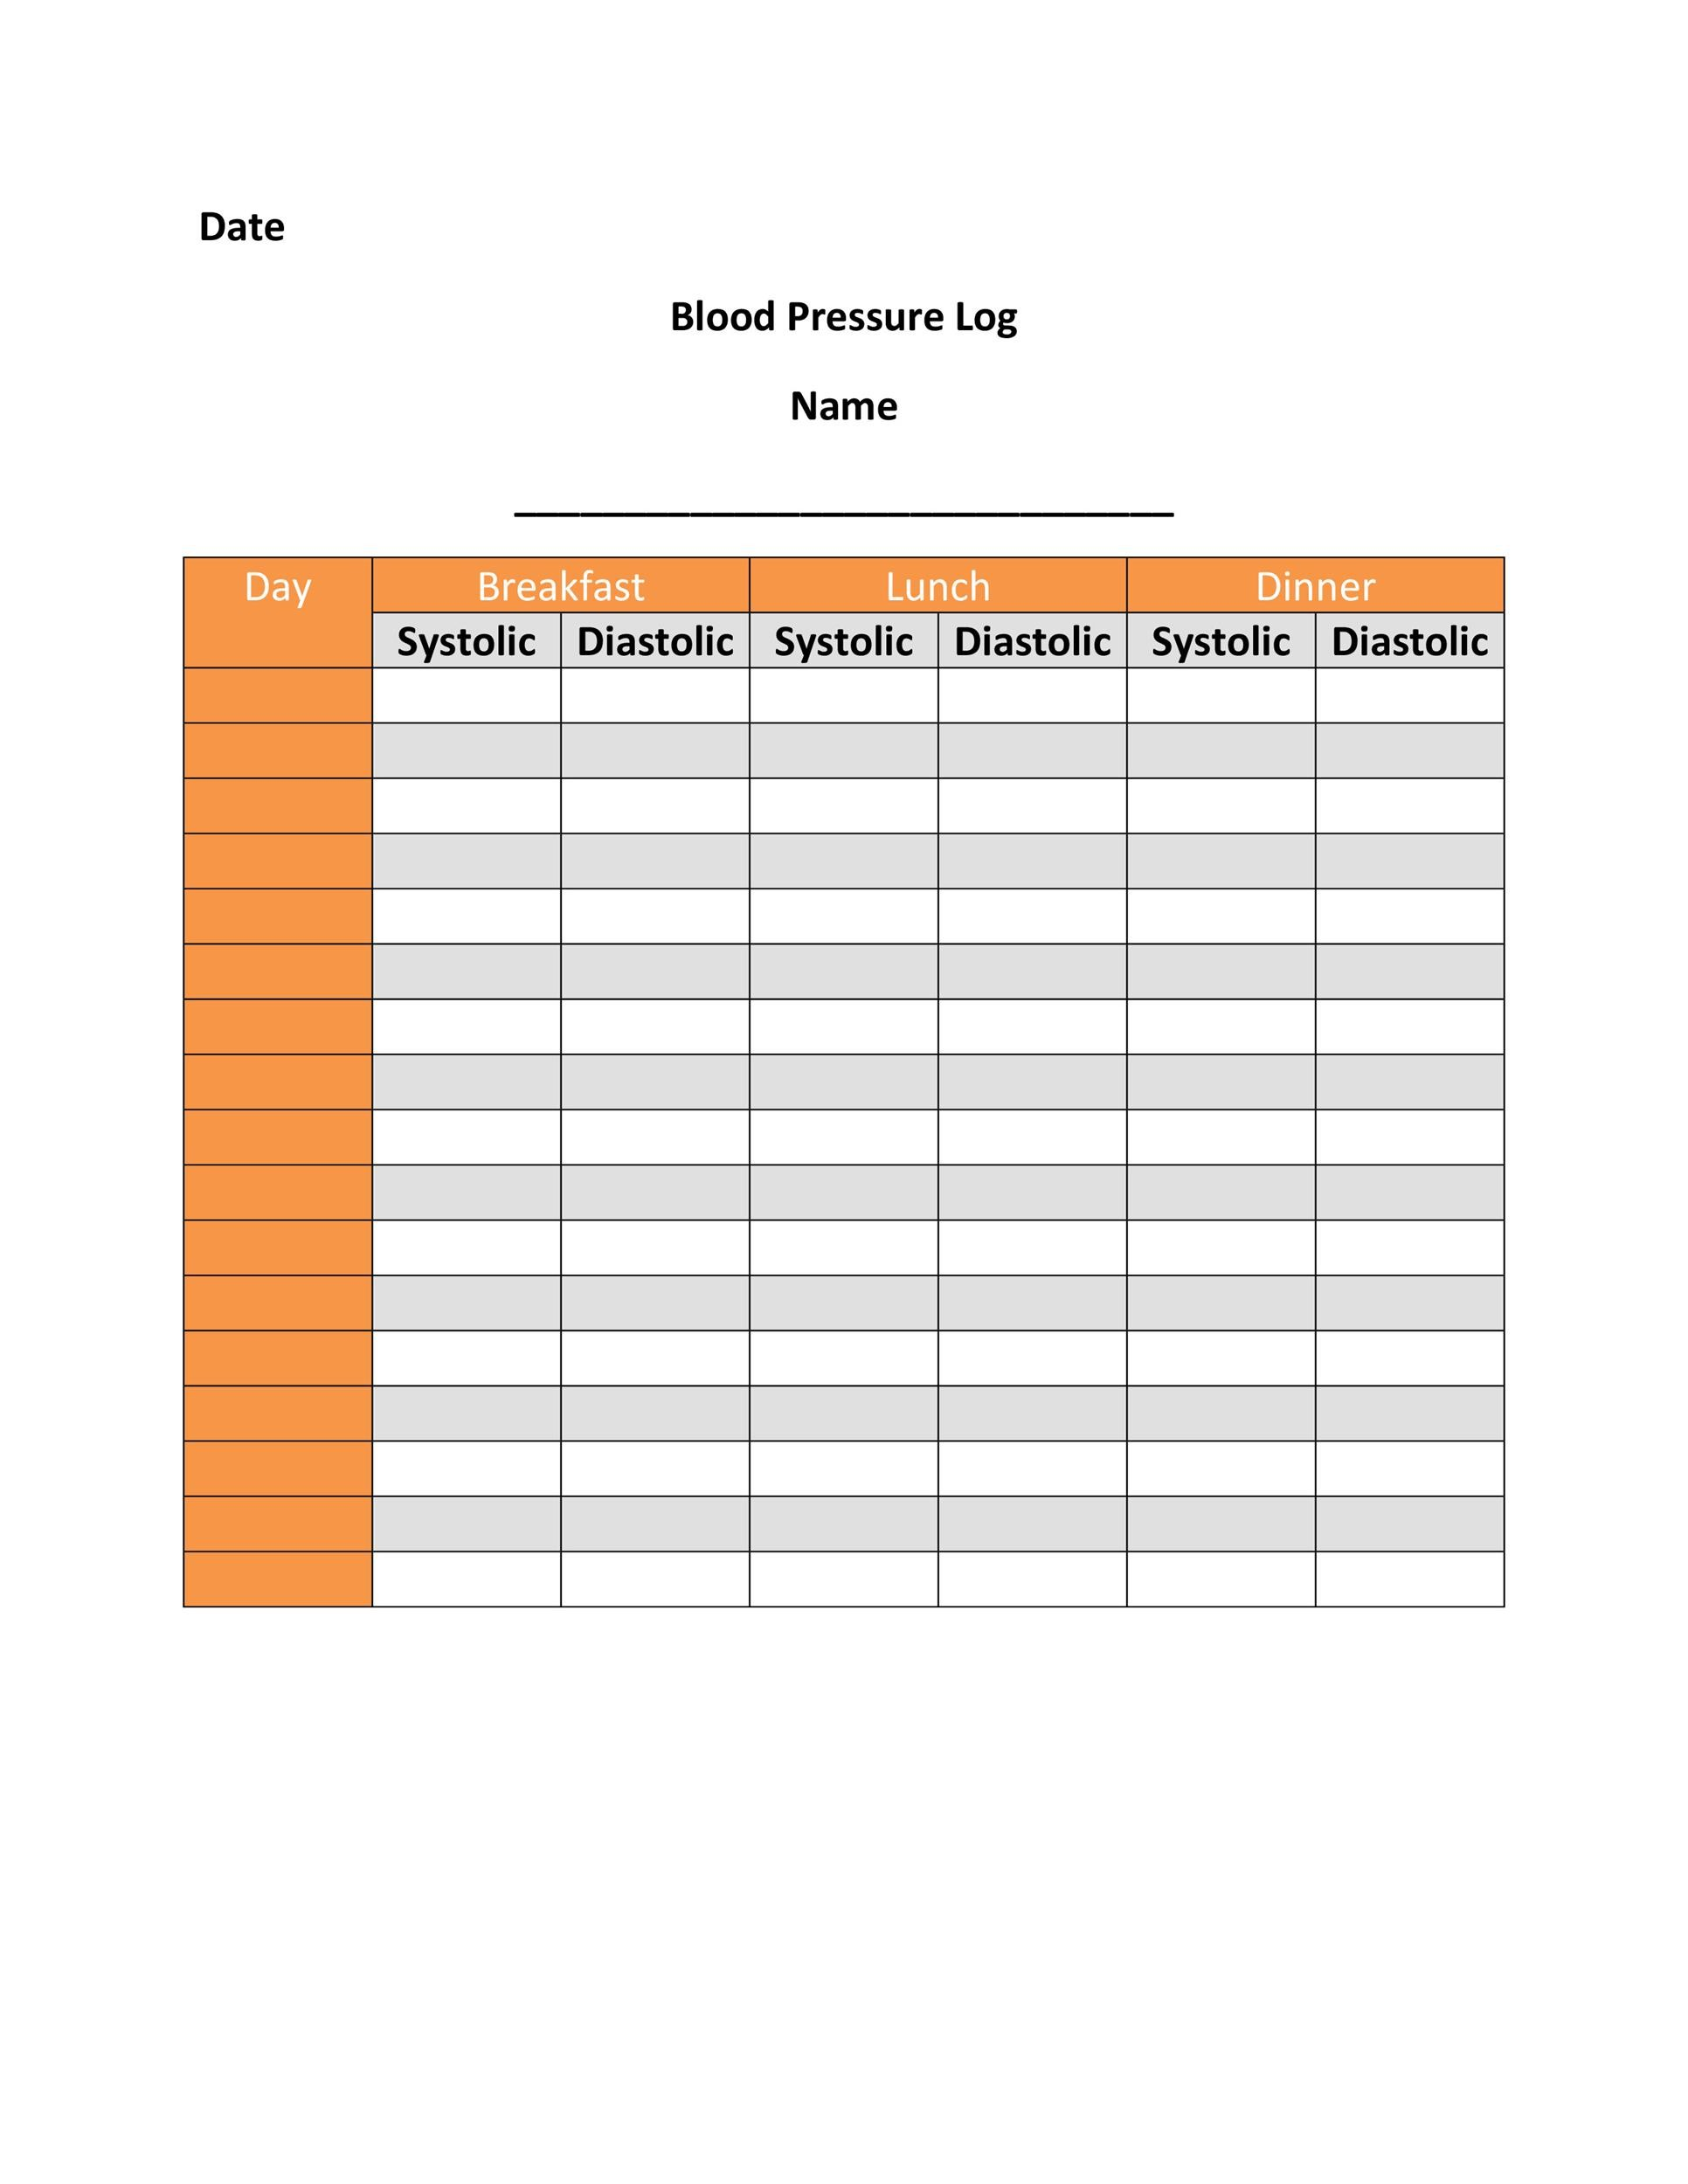 photo about Printable Blood Pressure Log Wallet Size named 30+ Printable Blood Anxiety Log Templates ᐅ Template Lab